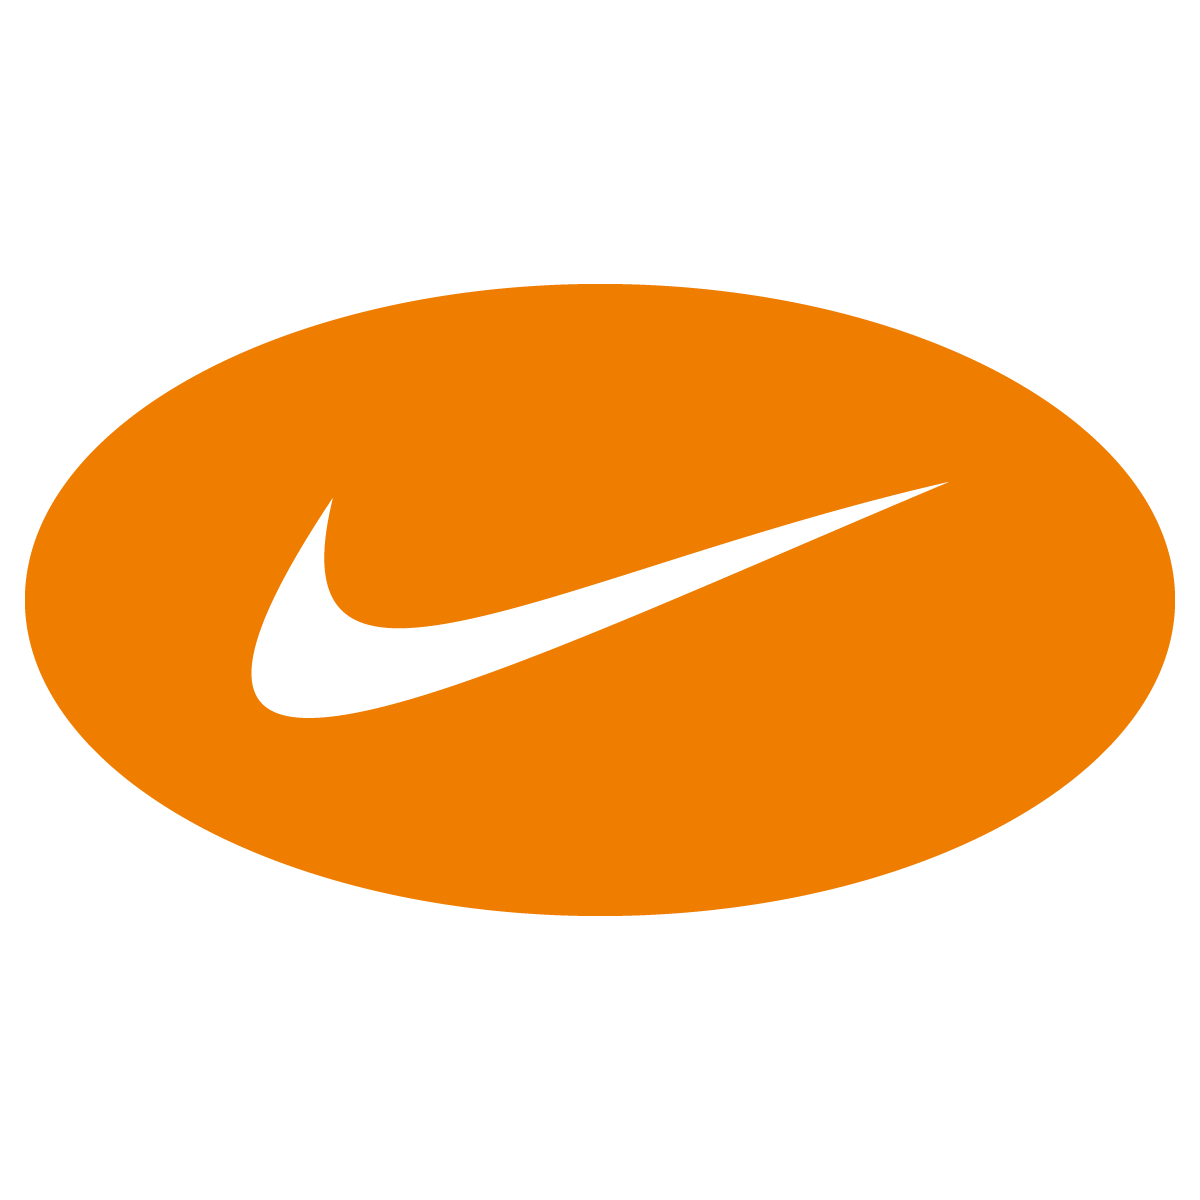 Nike Logo Silhouette at GetDrawings com | Free for personal use Nike